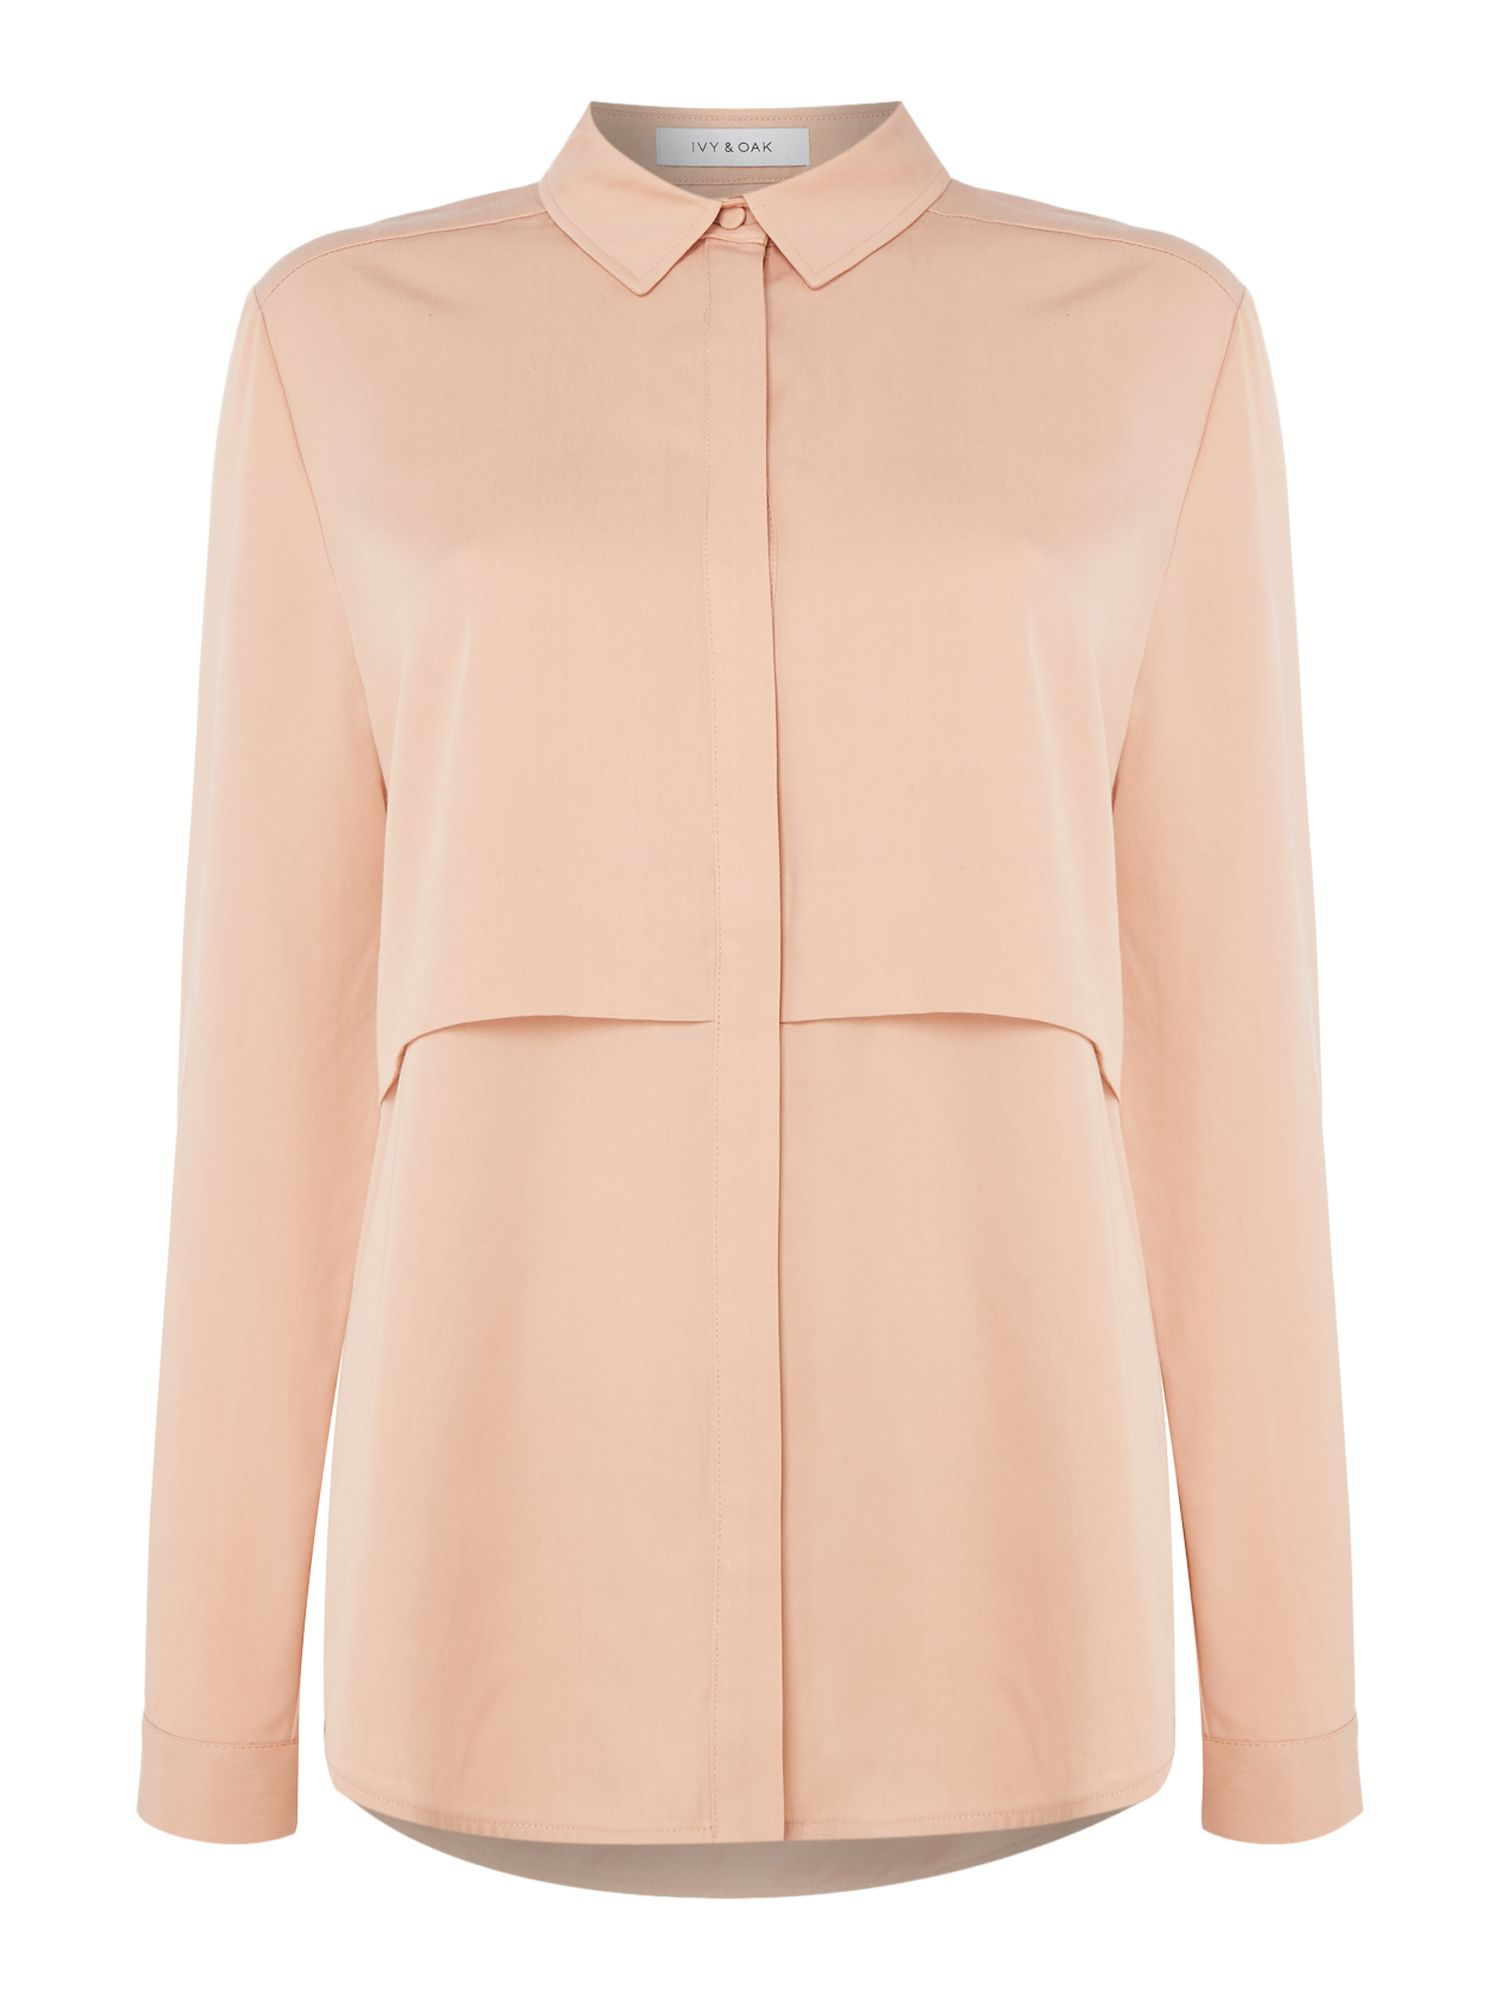 Ivy & Oak Longsleeve shirt blouse with layers, Pink